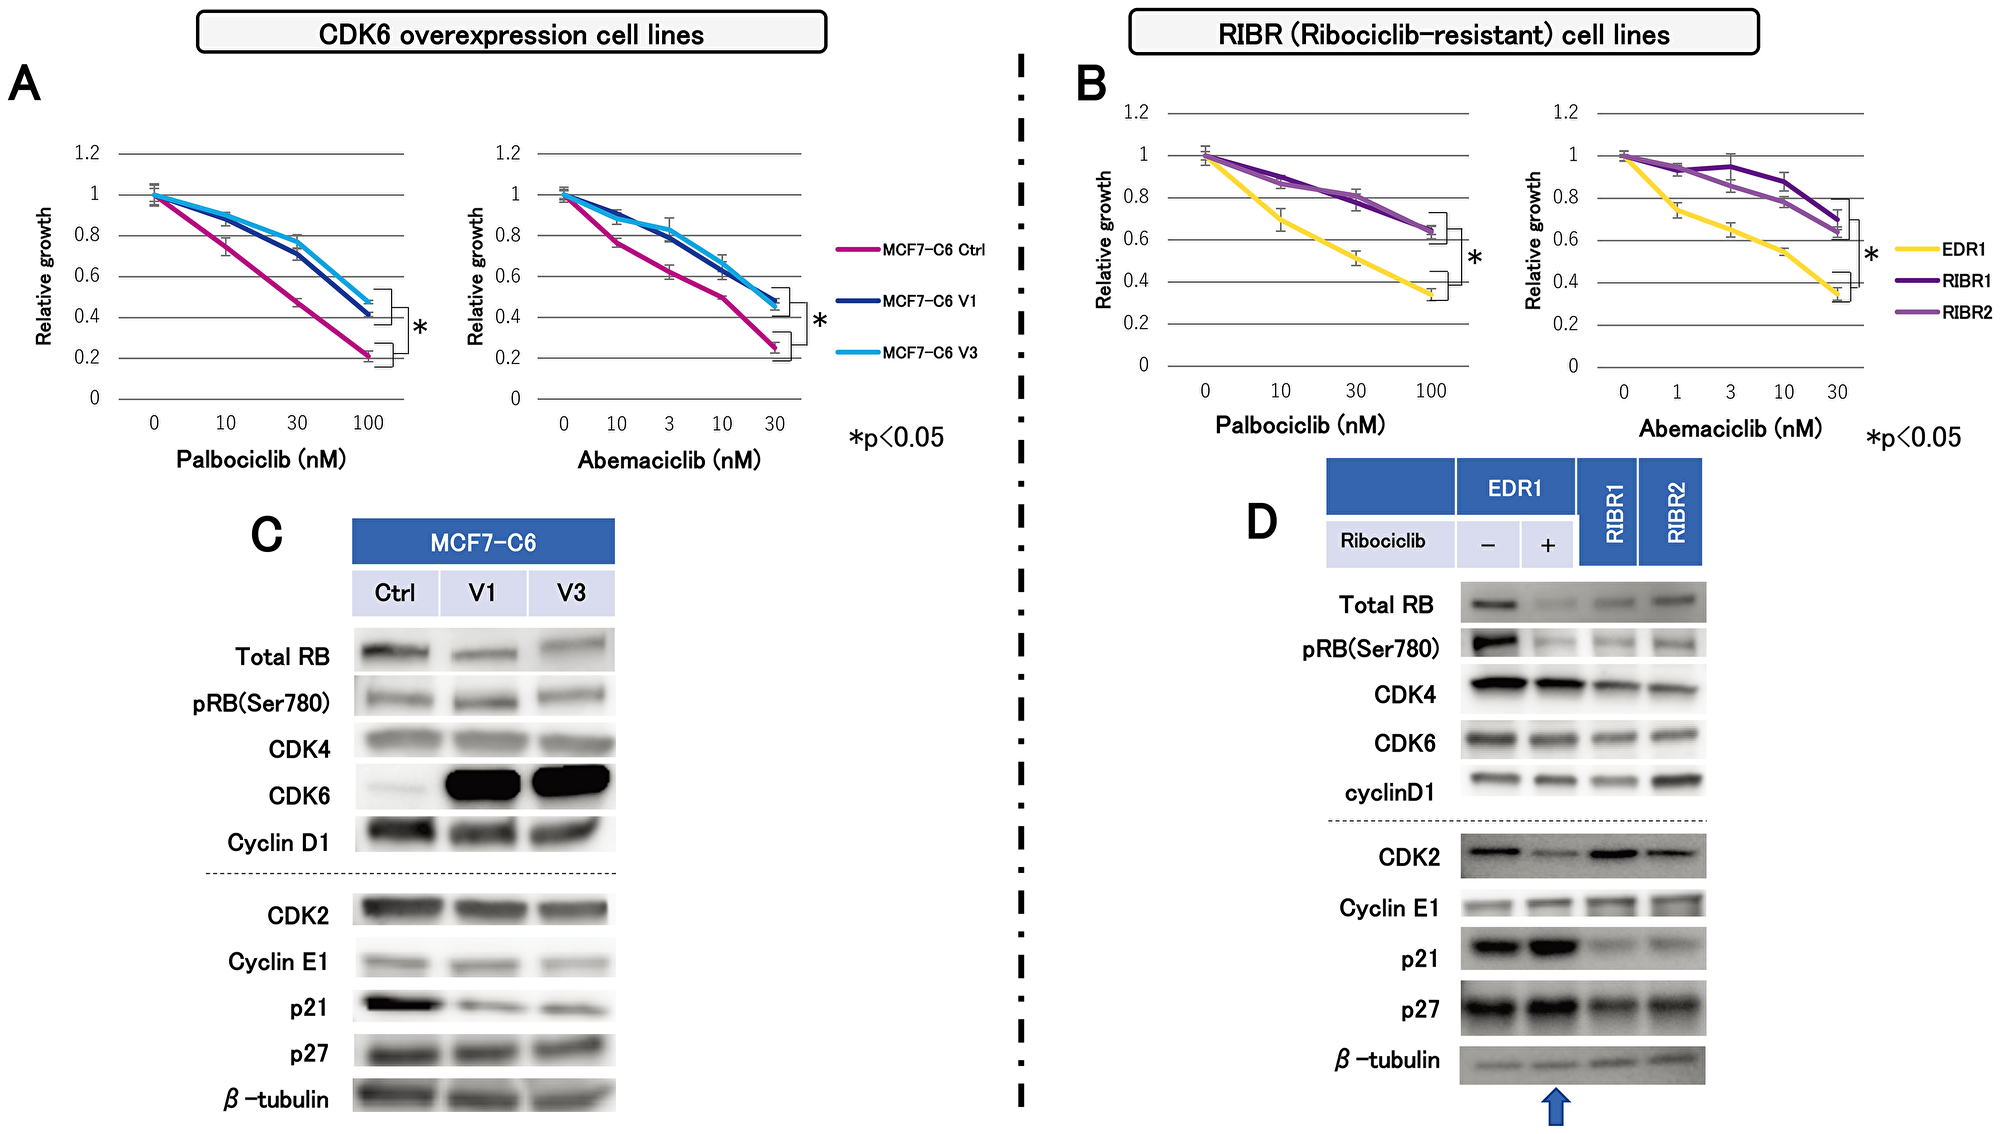 Sensitivity to other CDK4/6 inhibitors and molecular-targeted drugs and expression levels of cell-cycle regulatory agents.